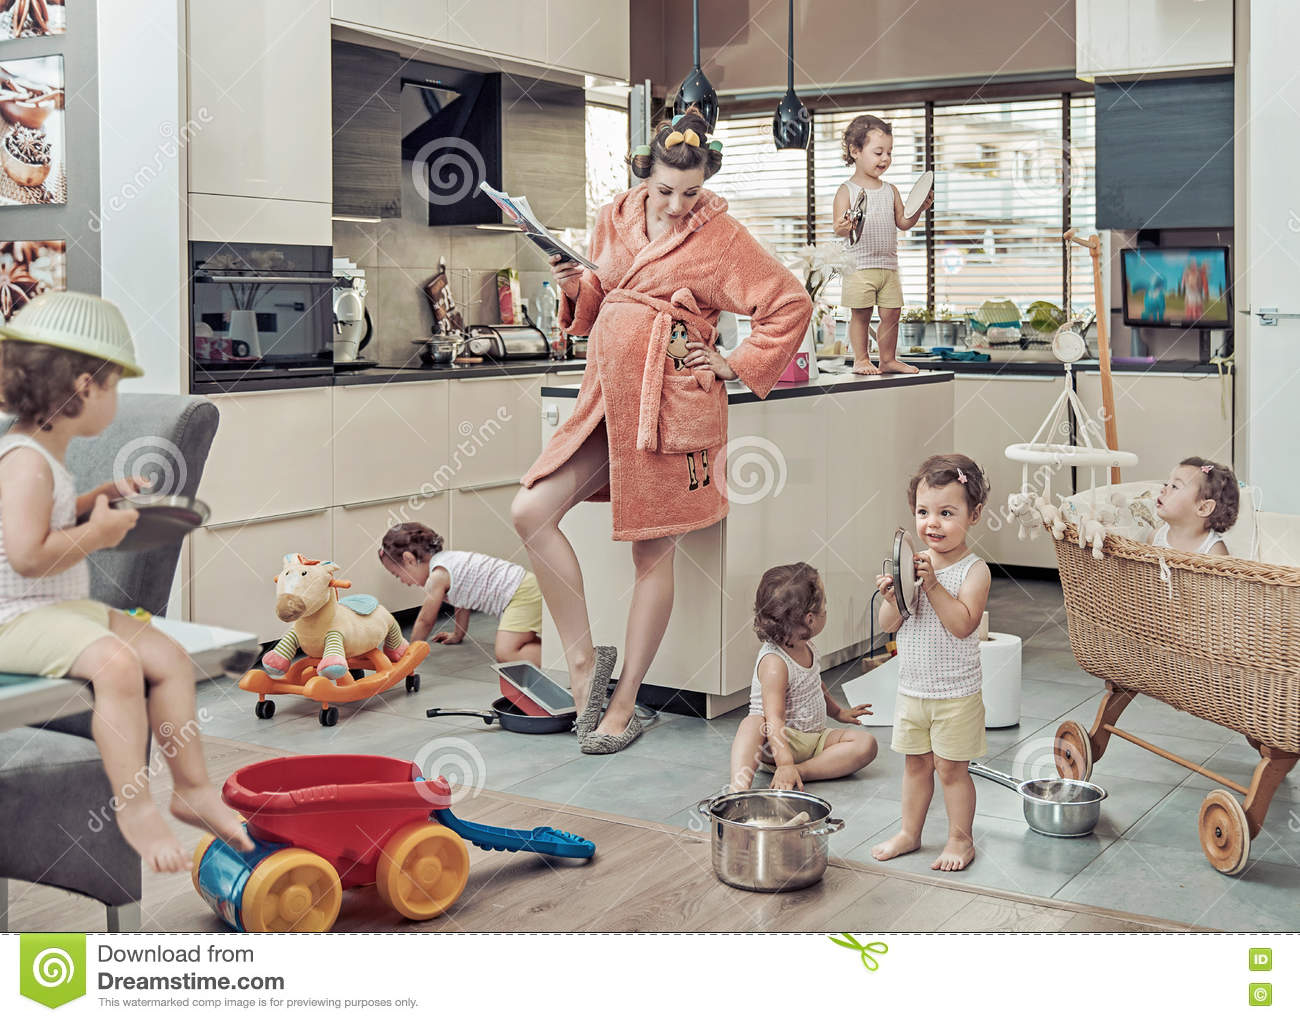 conceptual image of exhausted mom with her misbehaving